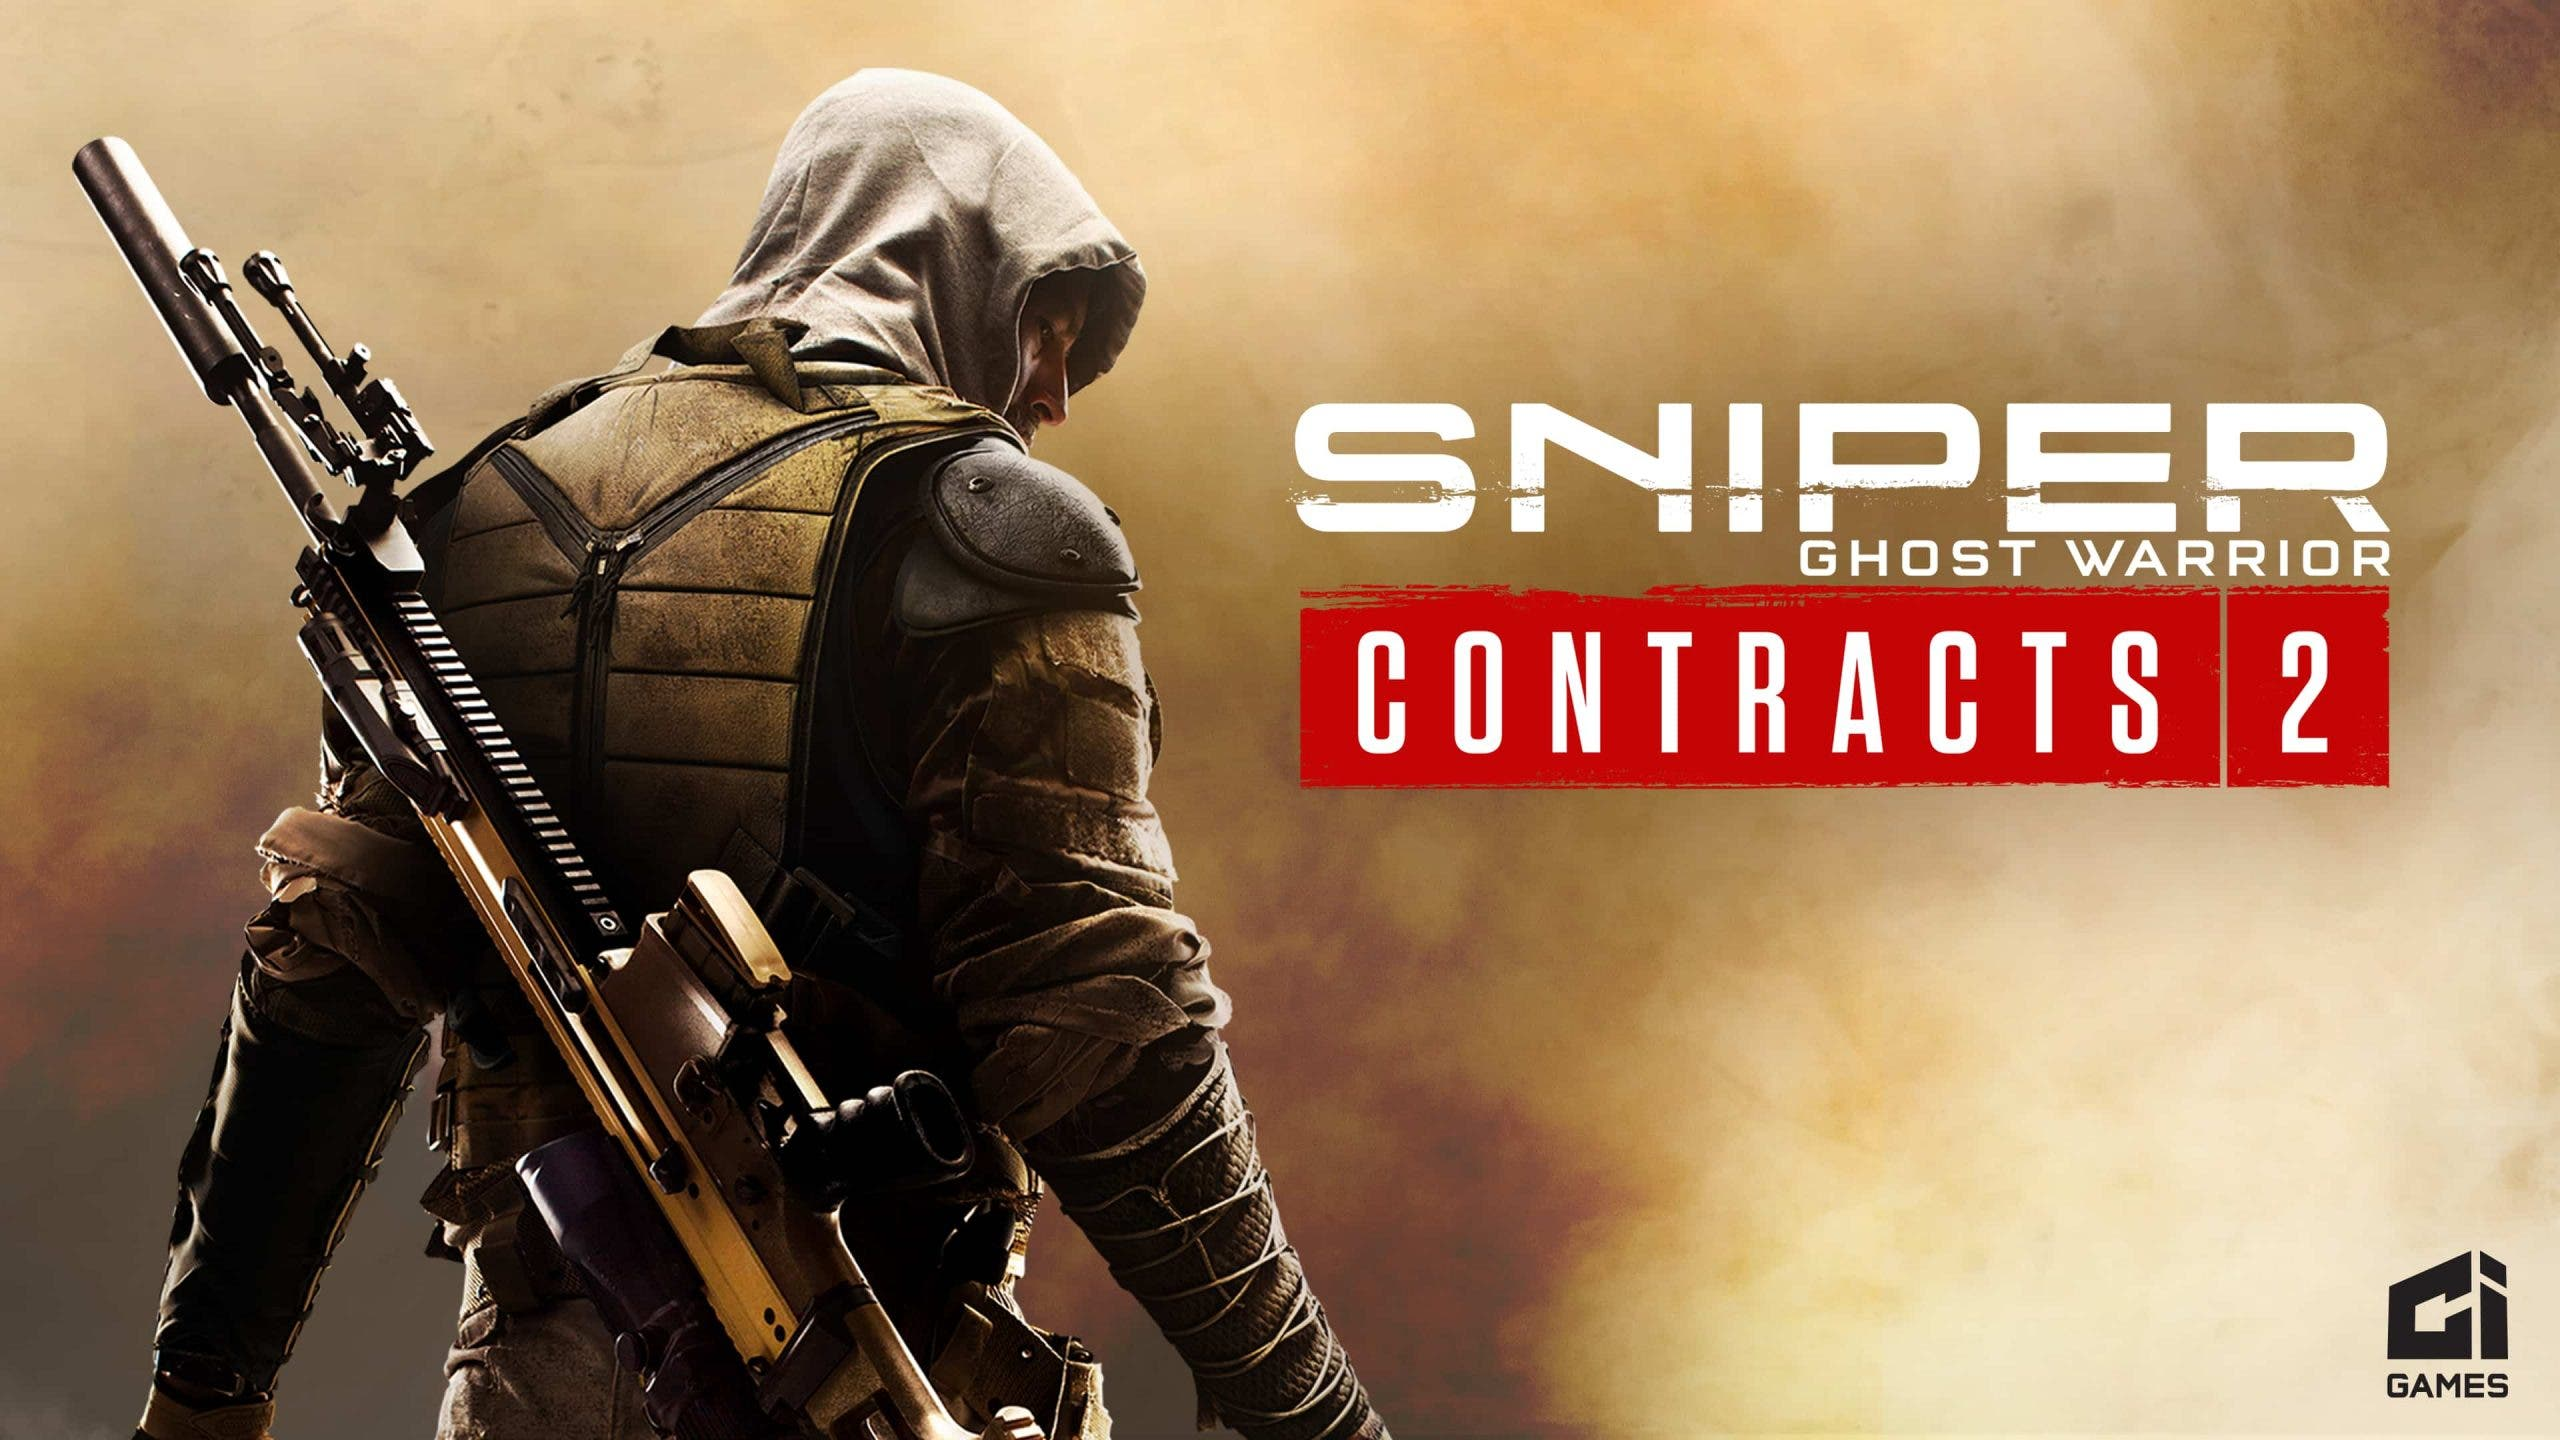 Análisis de Sniper Ghost Warrior Contracts 2 - Xbox One 2